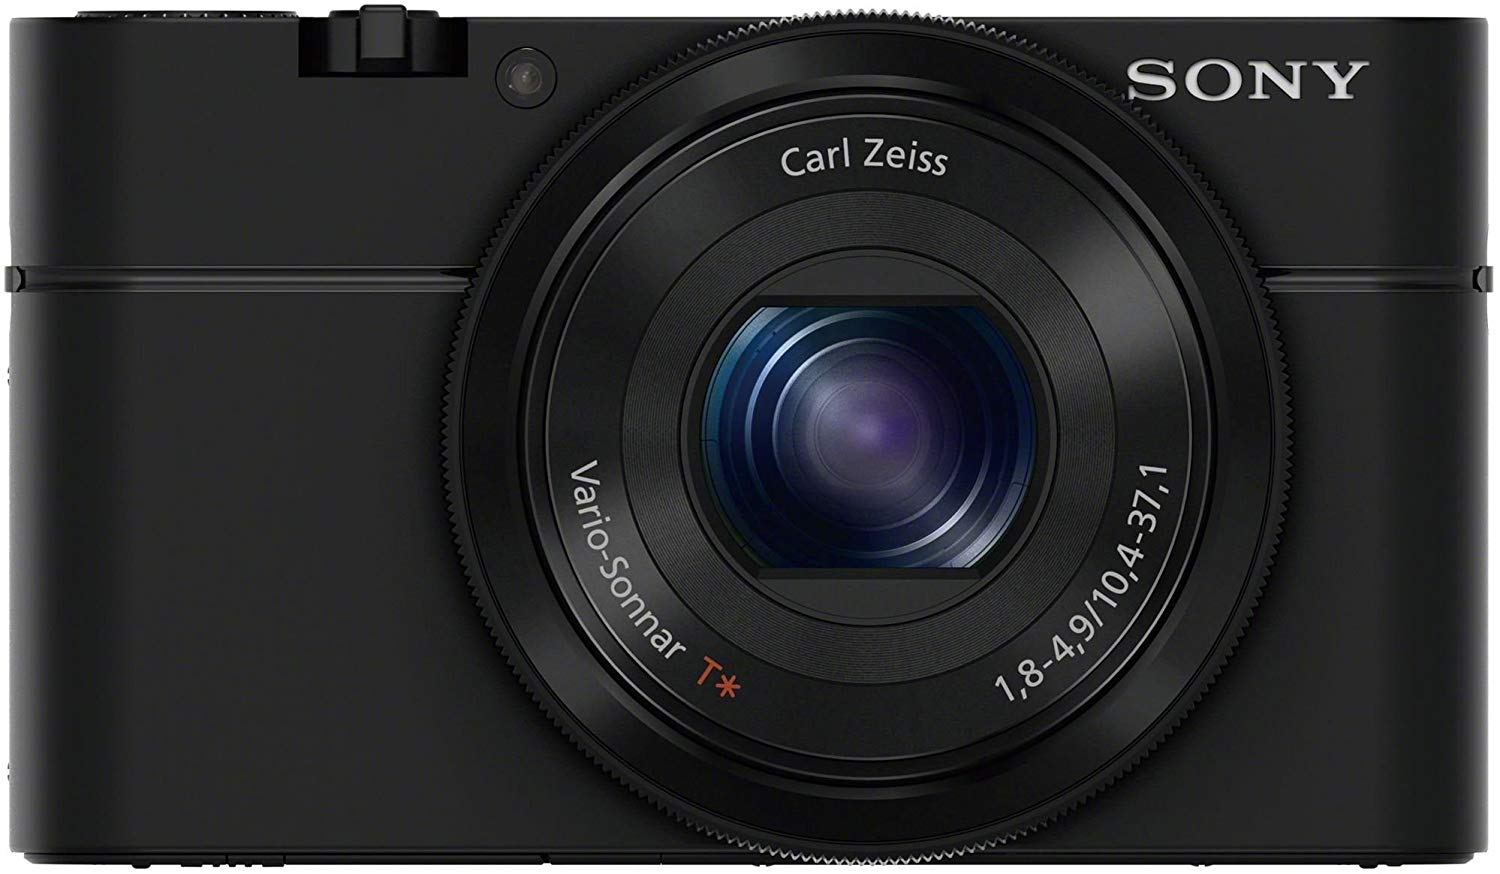 Sony RX100 M1 for first prize winner